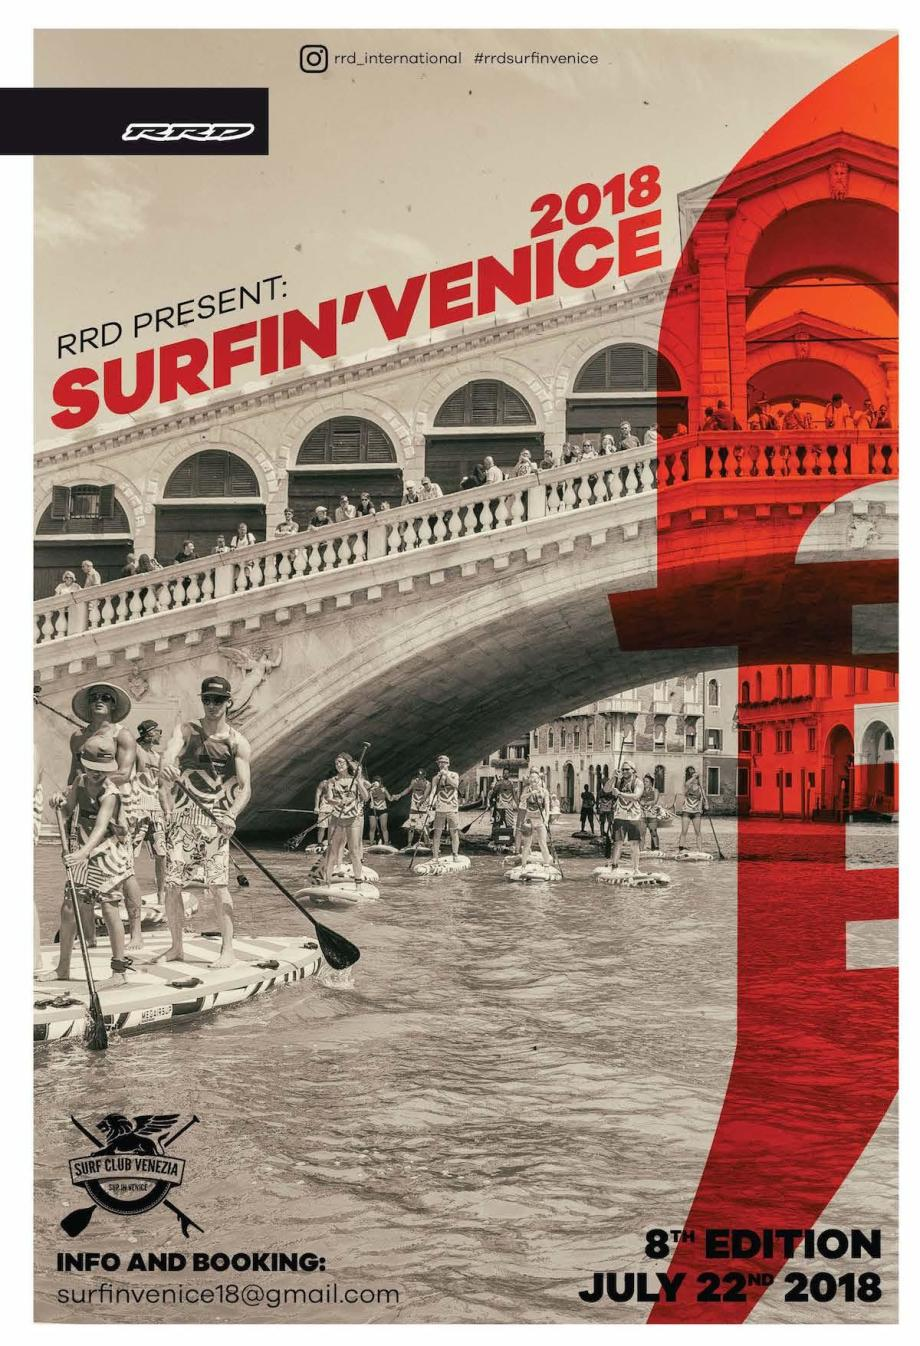 surfinvenice-course-stand-up-paddle-a-Venise